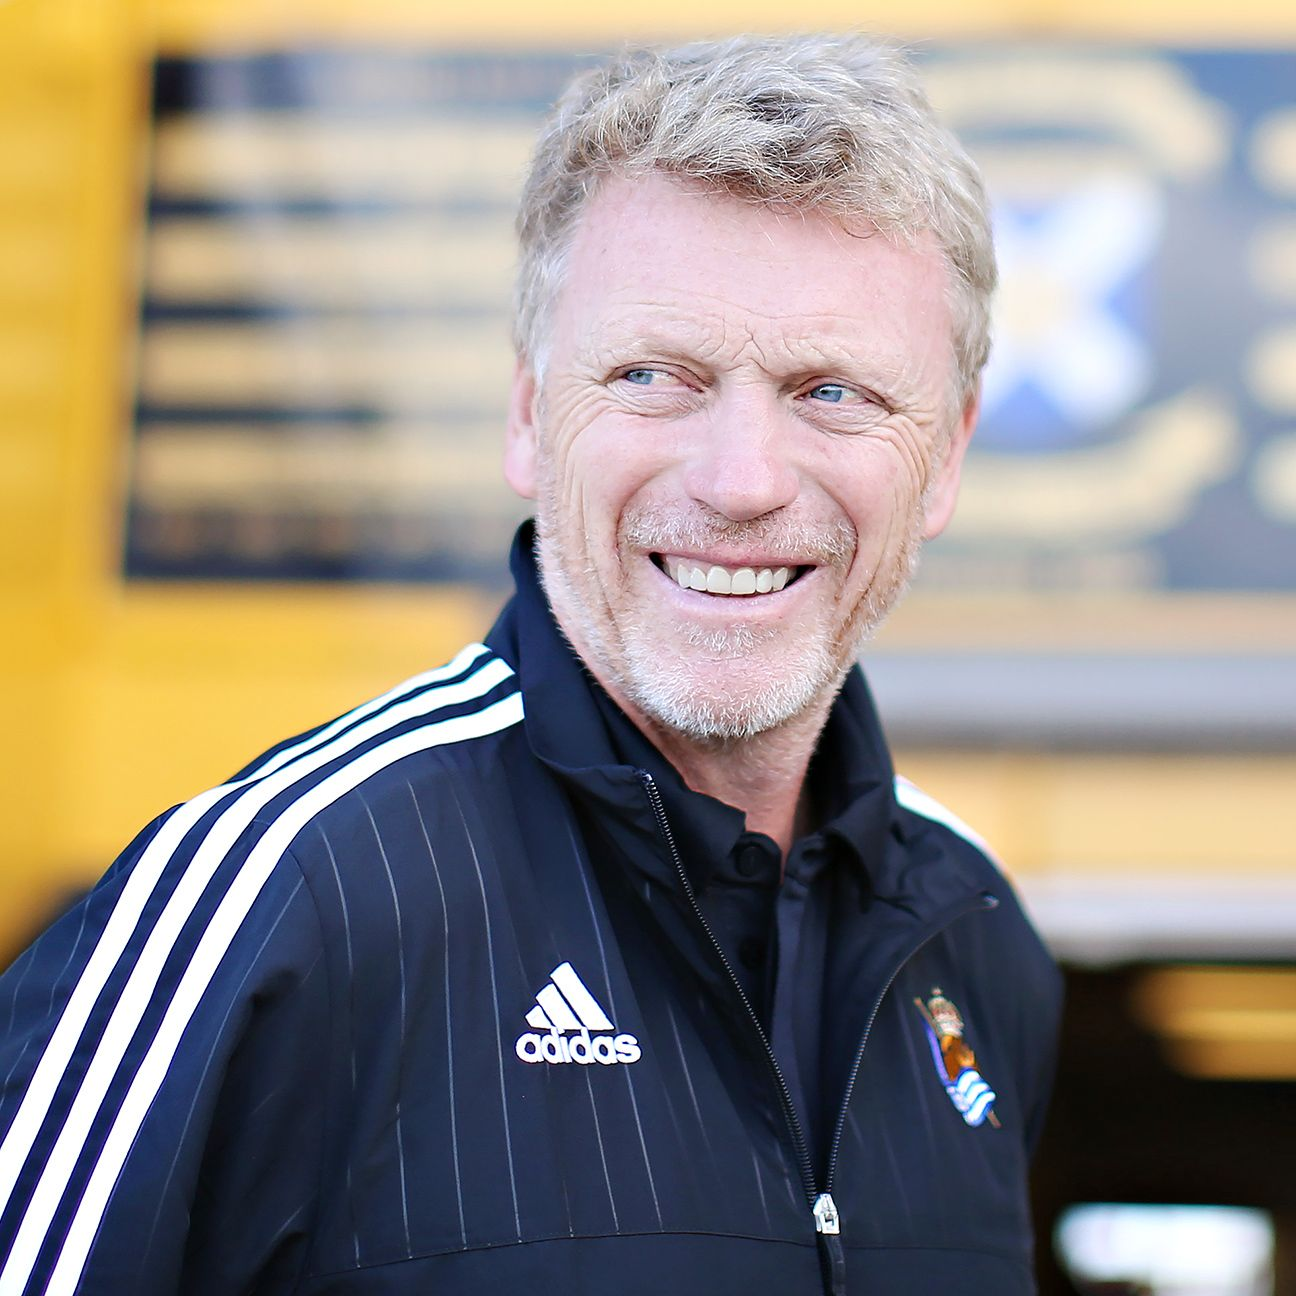 David Moyes guided Real Sociedad to their first win of the season at Granada.